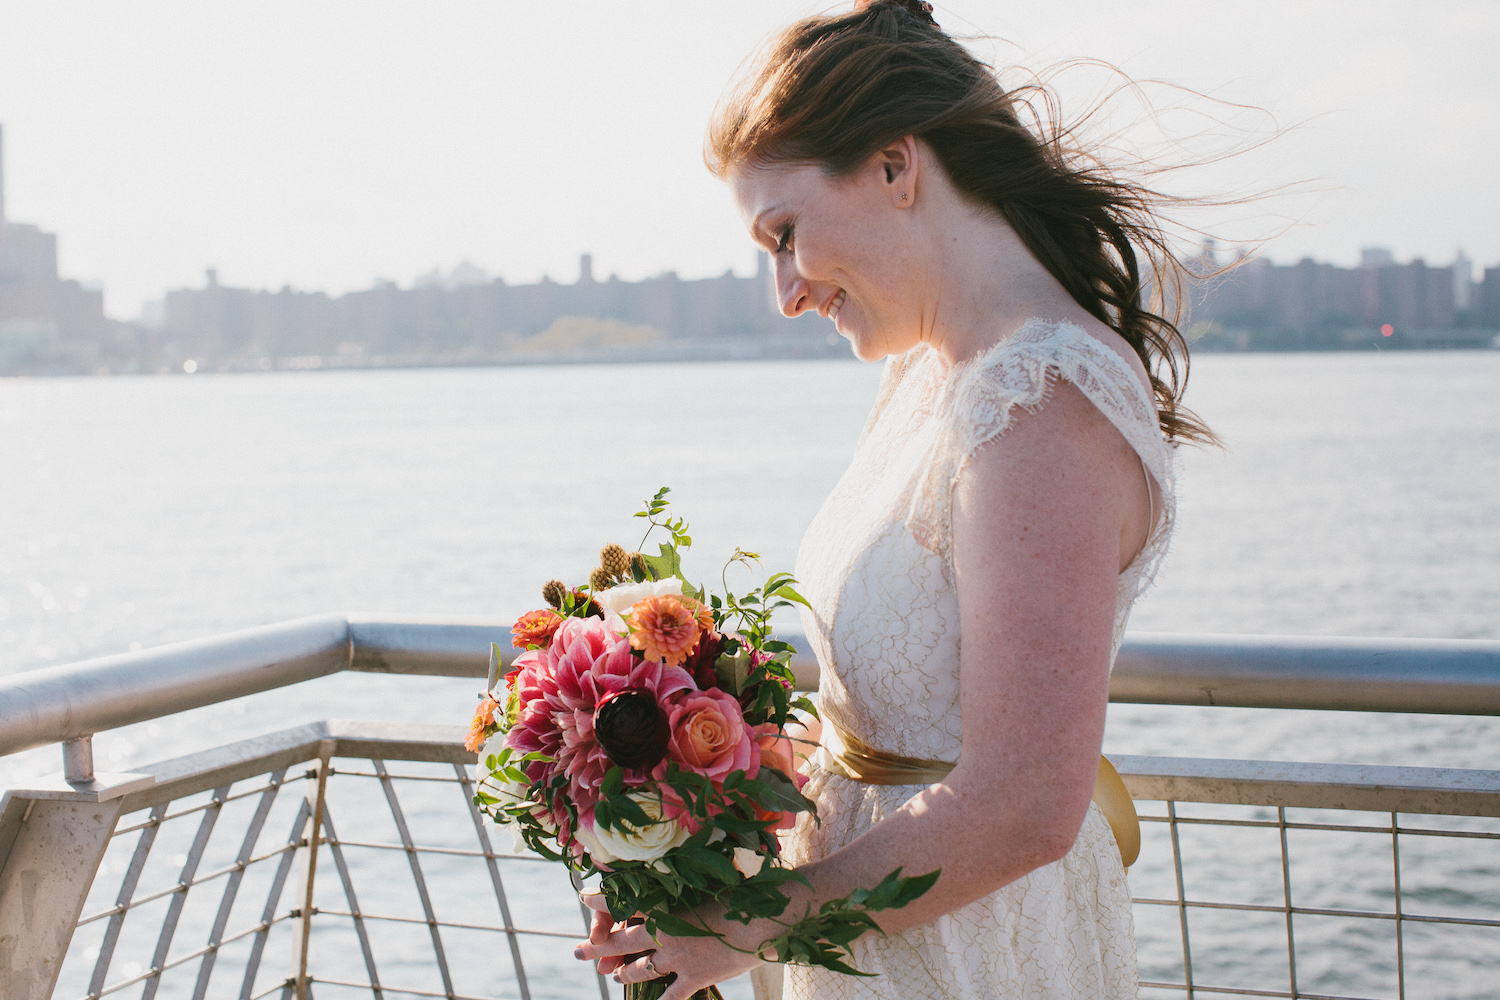 Full Aperture Floral & Corey Torpie Photography  - Brooklyn Wedding - 54.jpeg